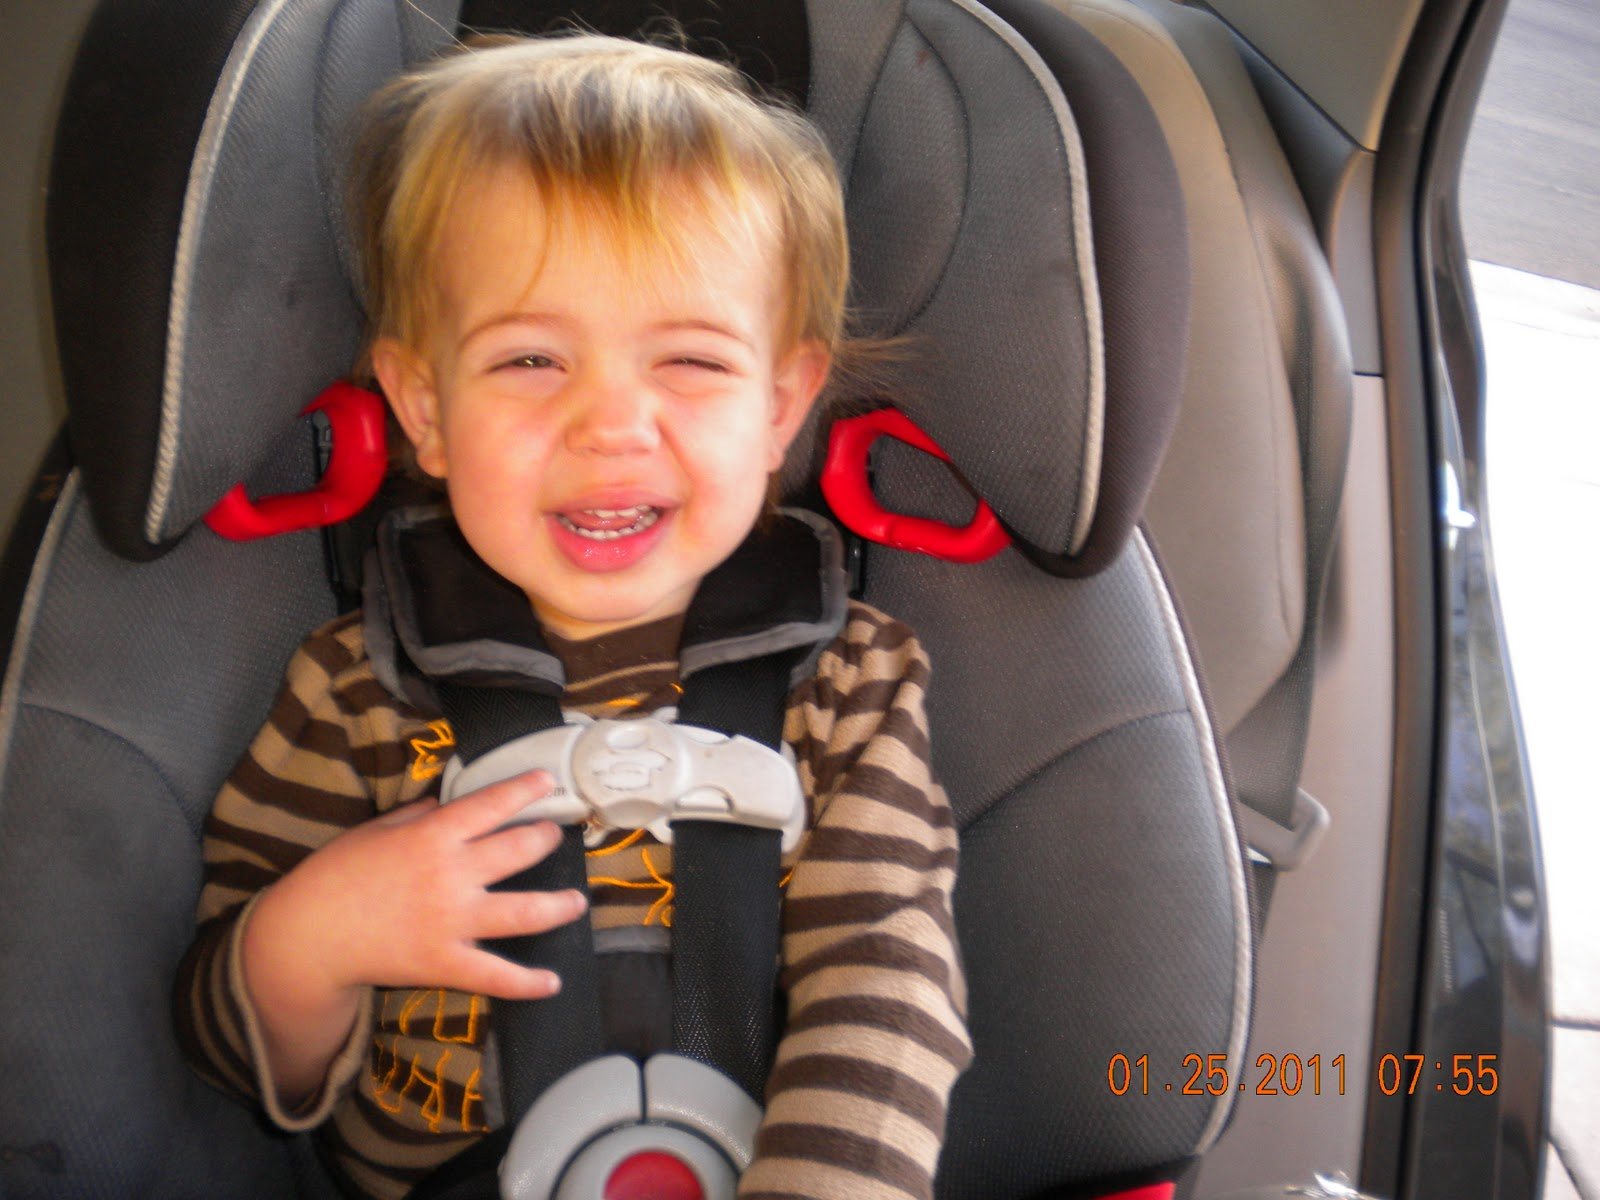 Graco Nautilus Rear Facing >> Jessica on Babies: Stealth-Adjusting a Car Seat: Right or Wrong?